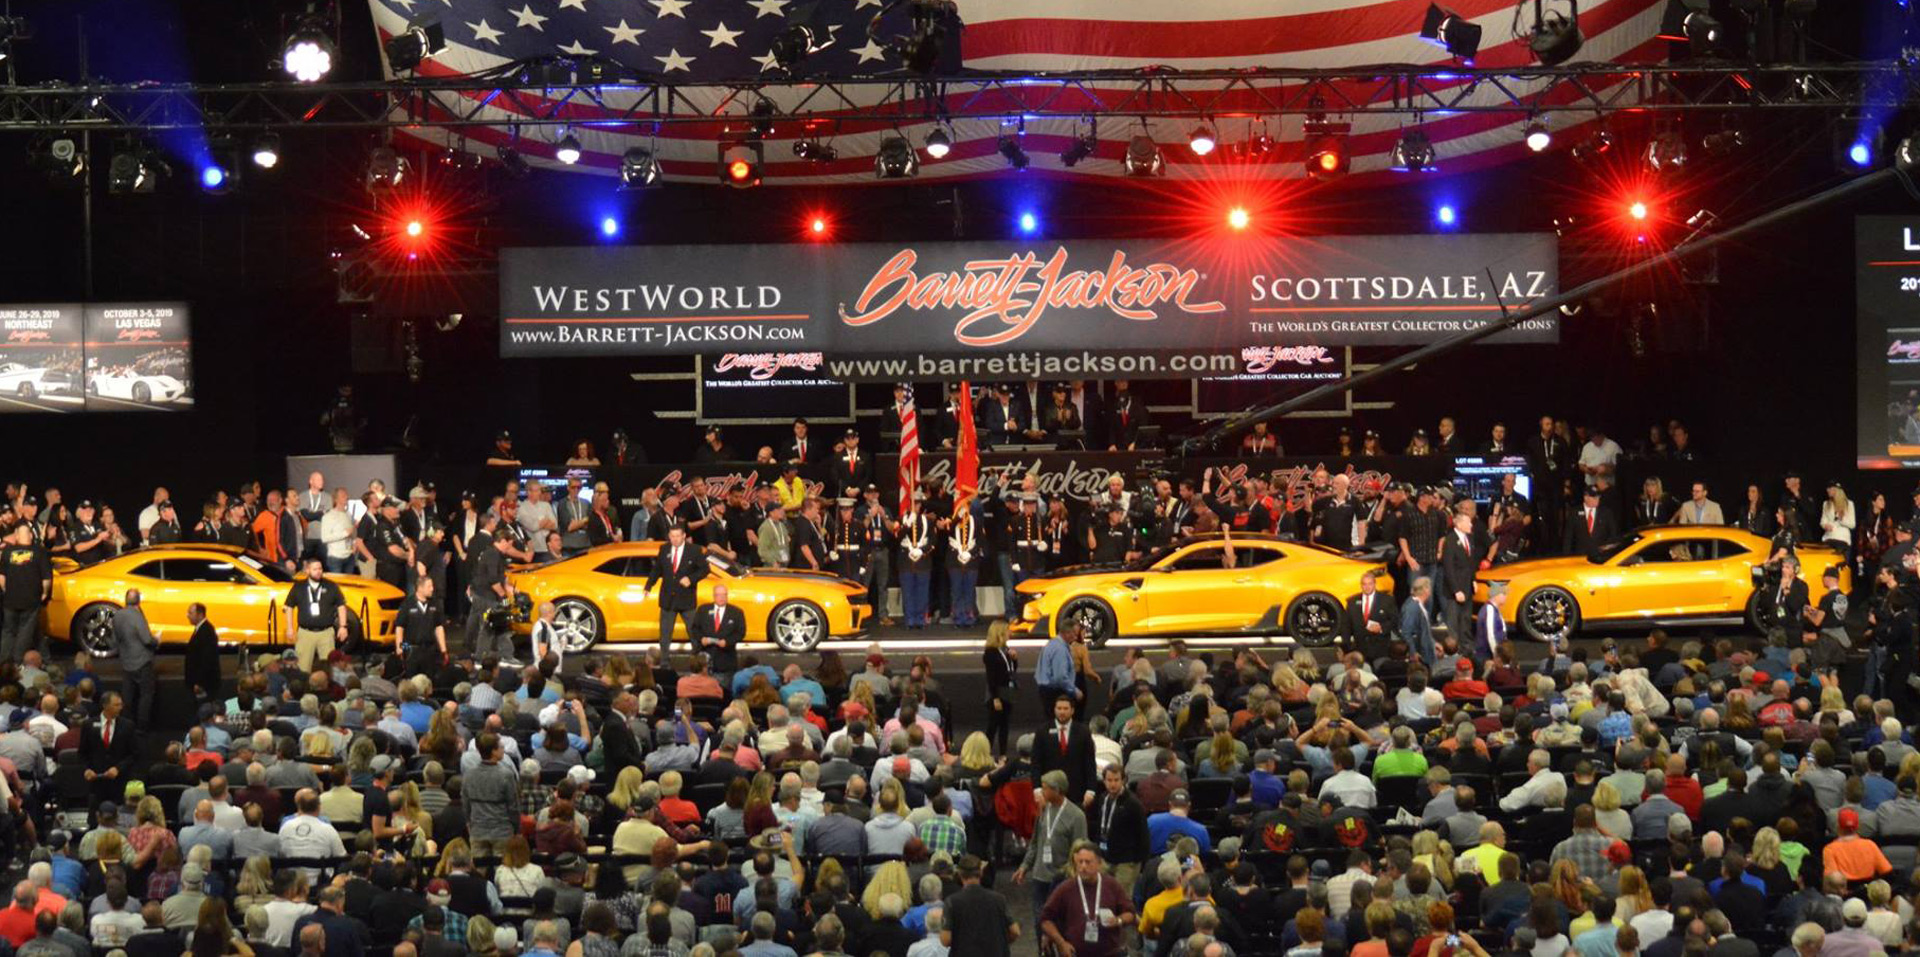 All 4 bumblebee camaros from transformers films fetch 500 000 in group sale - Images of bumblebee from transformers ...